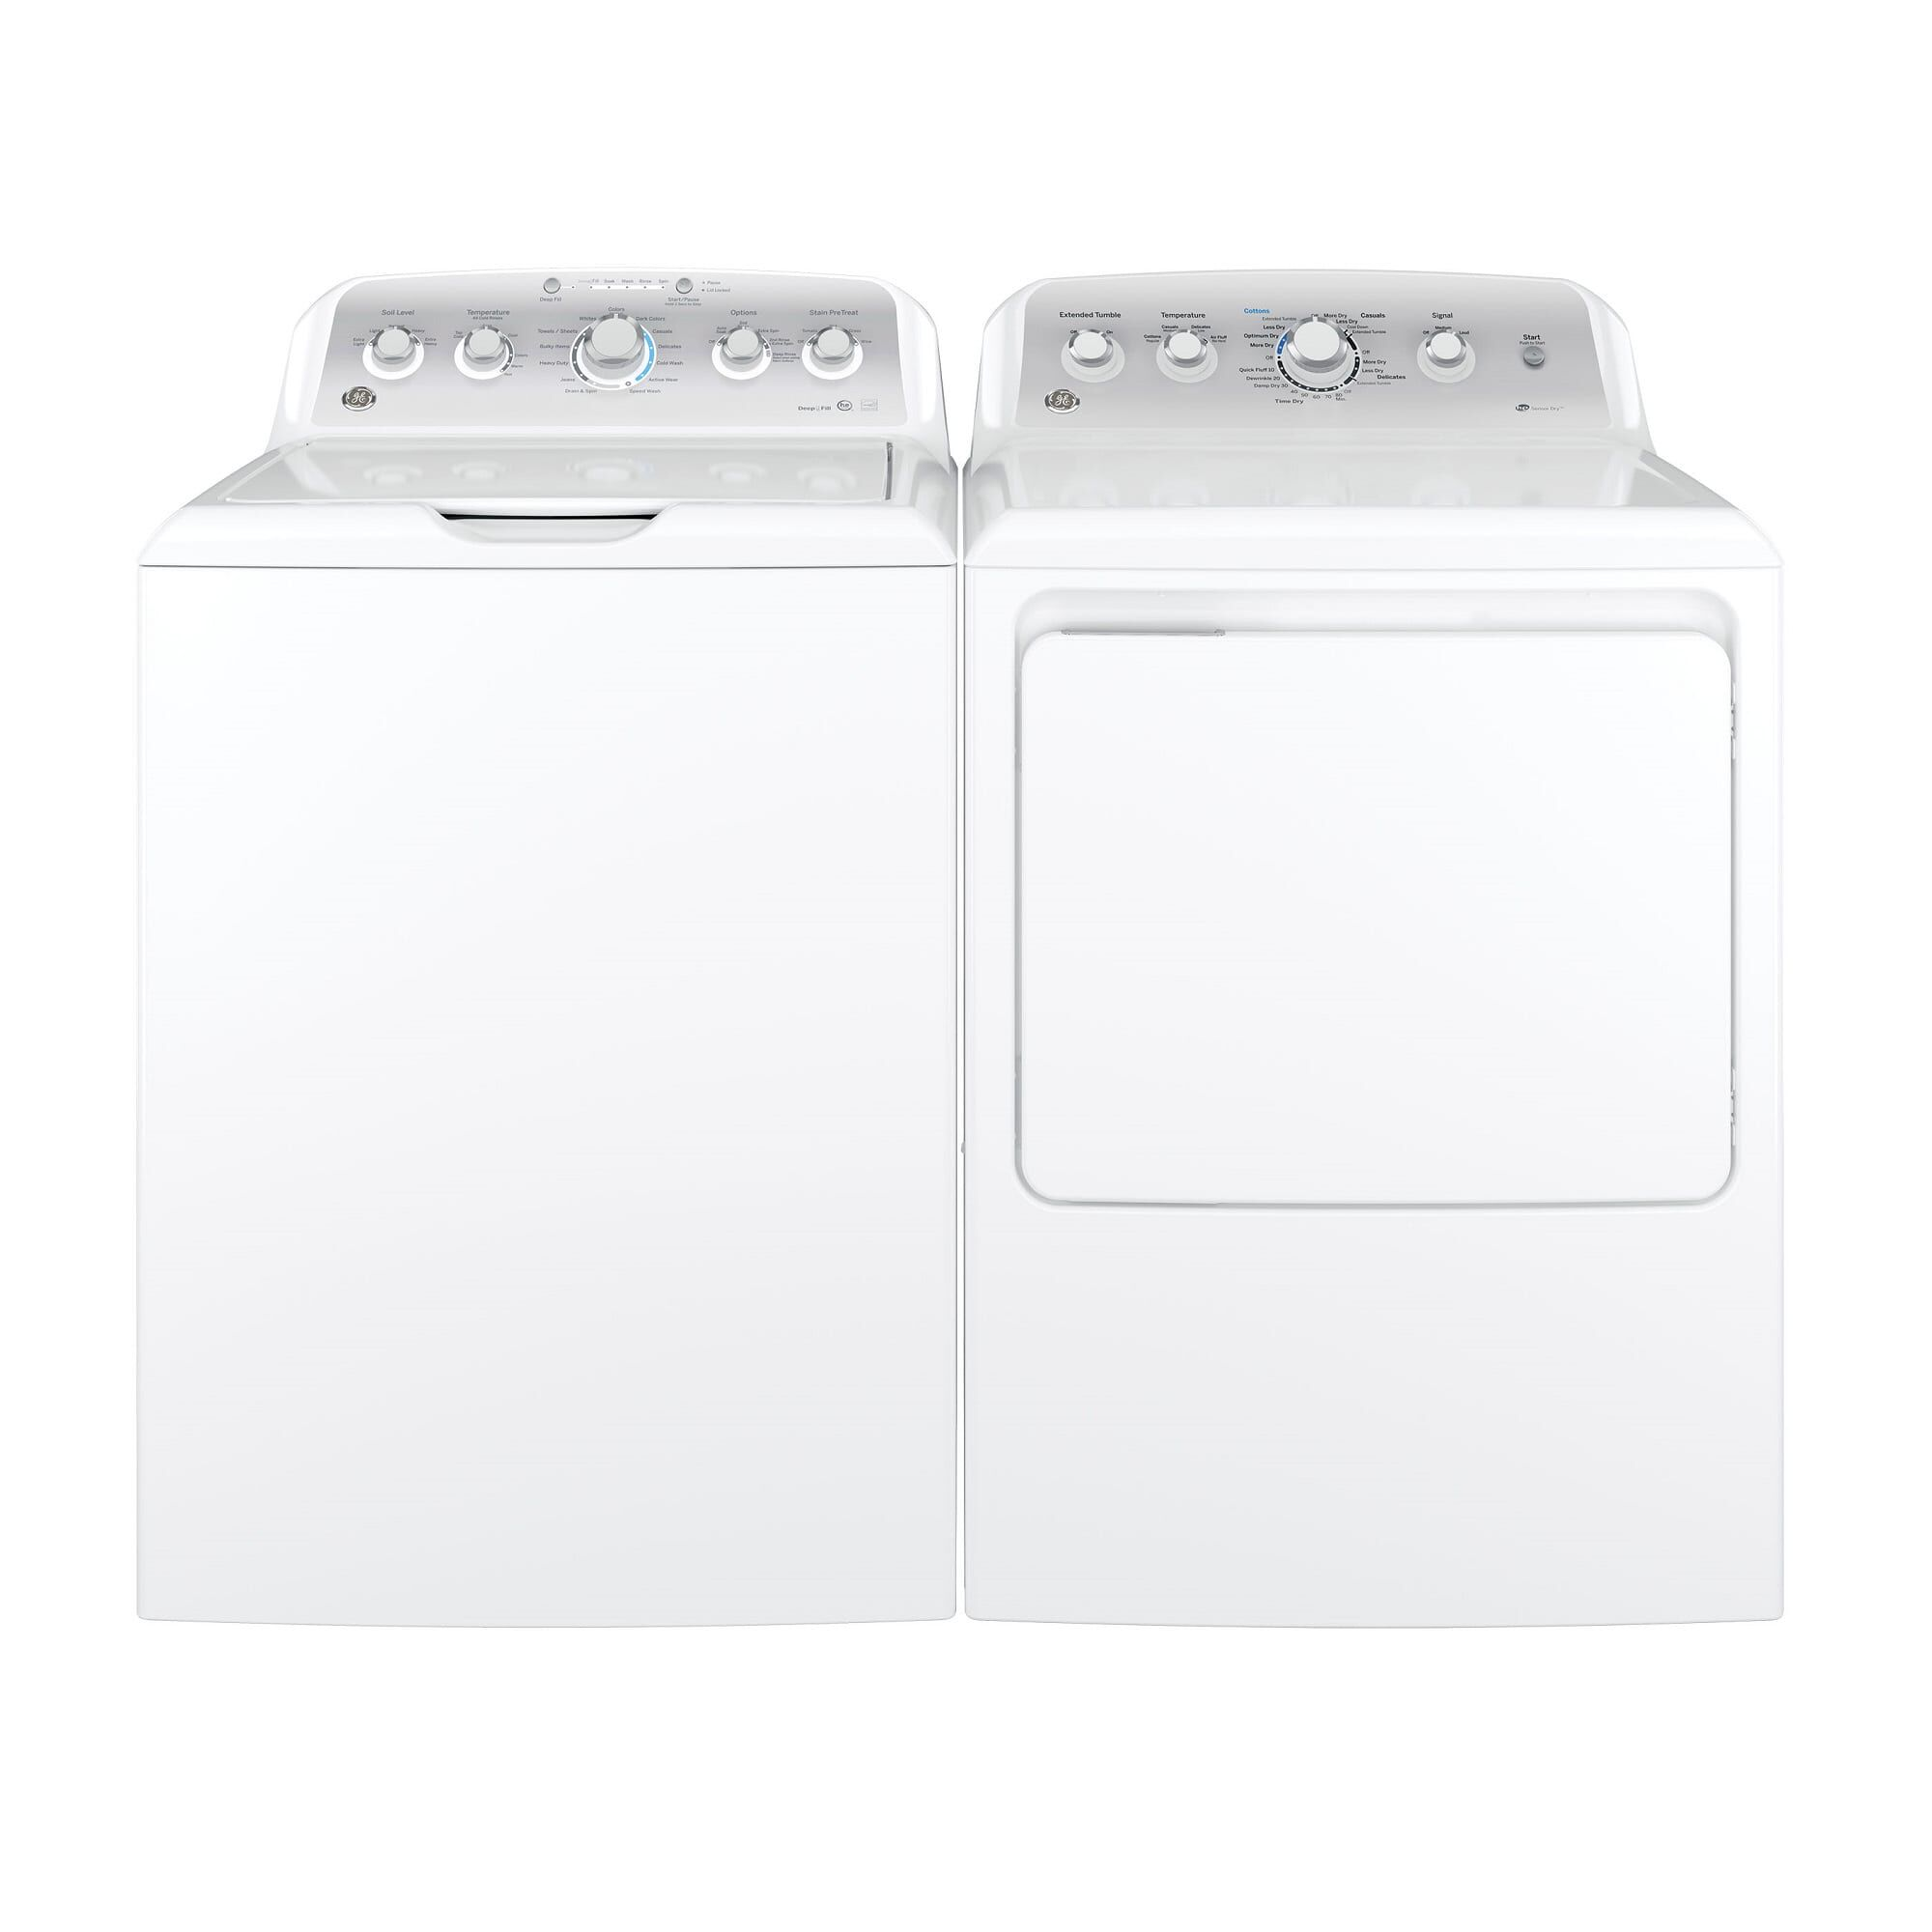 hight resolution of ge appliances washers dryers 4 4 cu ft he top load washer 7 2 cu ft electric dryer